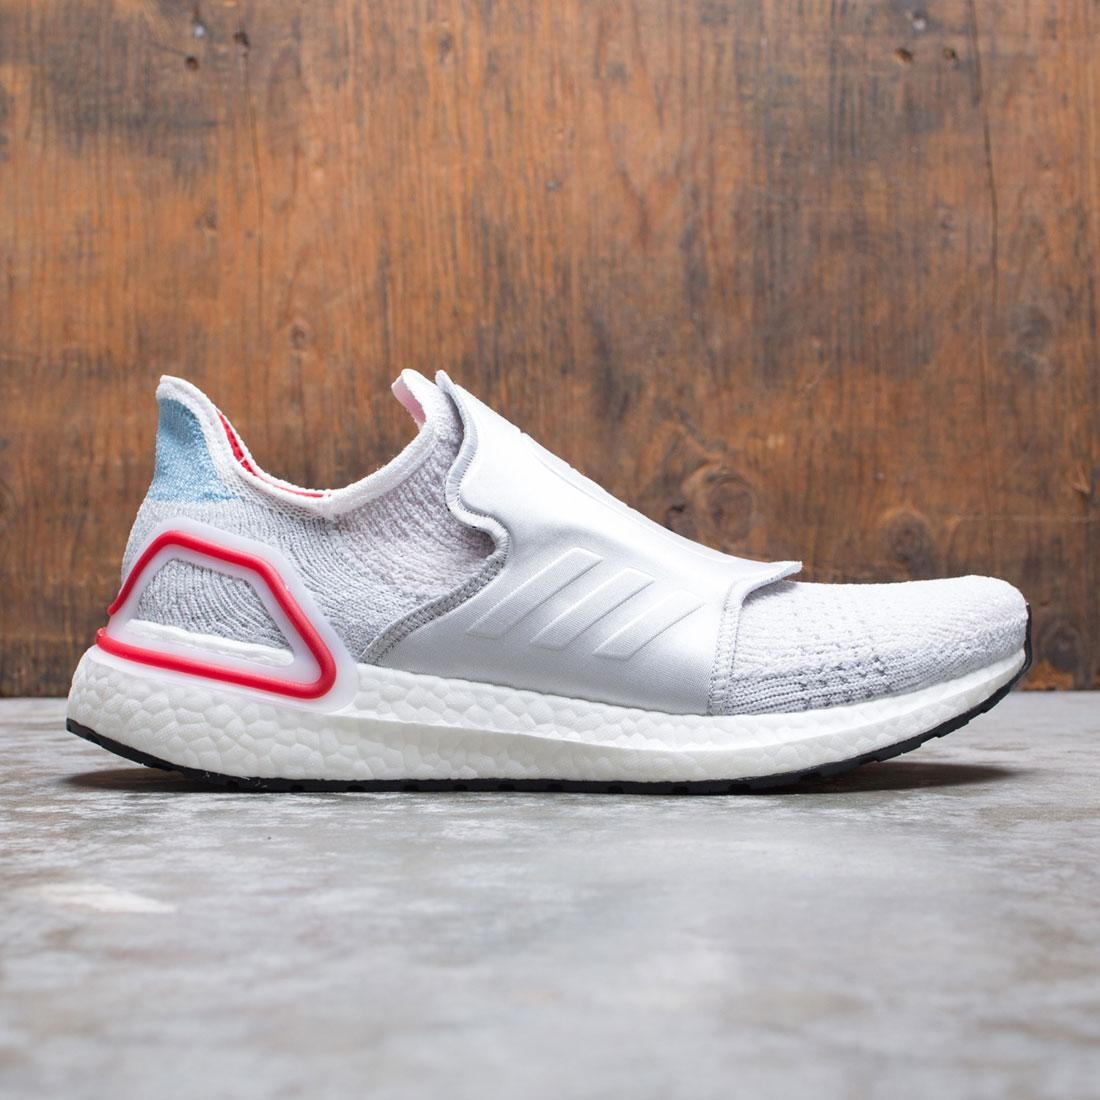 Adidas Consortium x DOE Men UltraBOOST 19 (white / chalk white / power red)